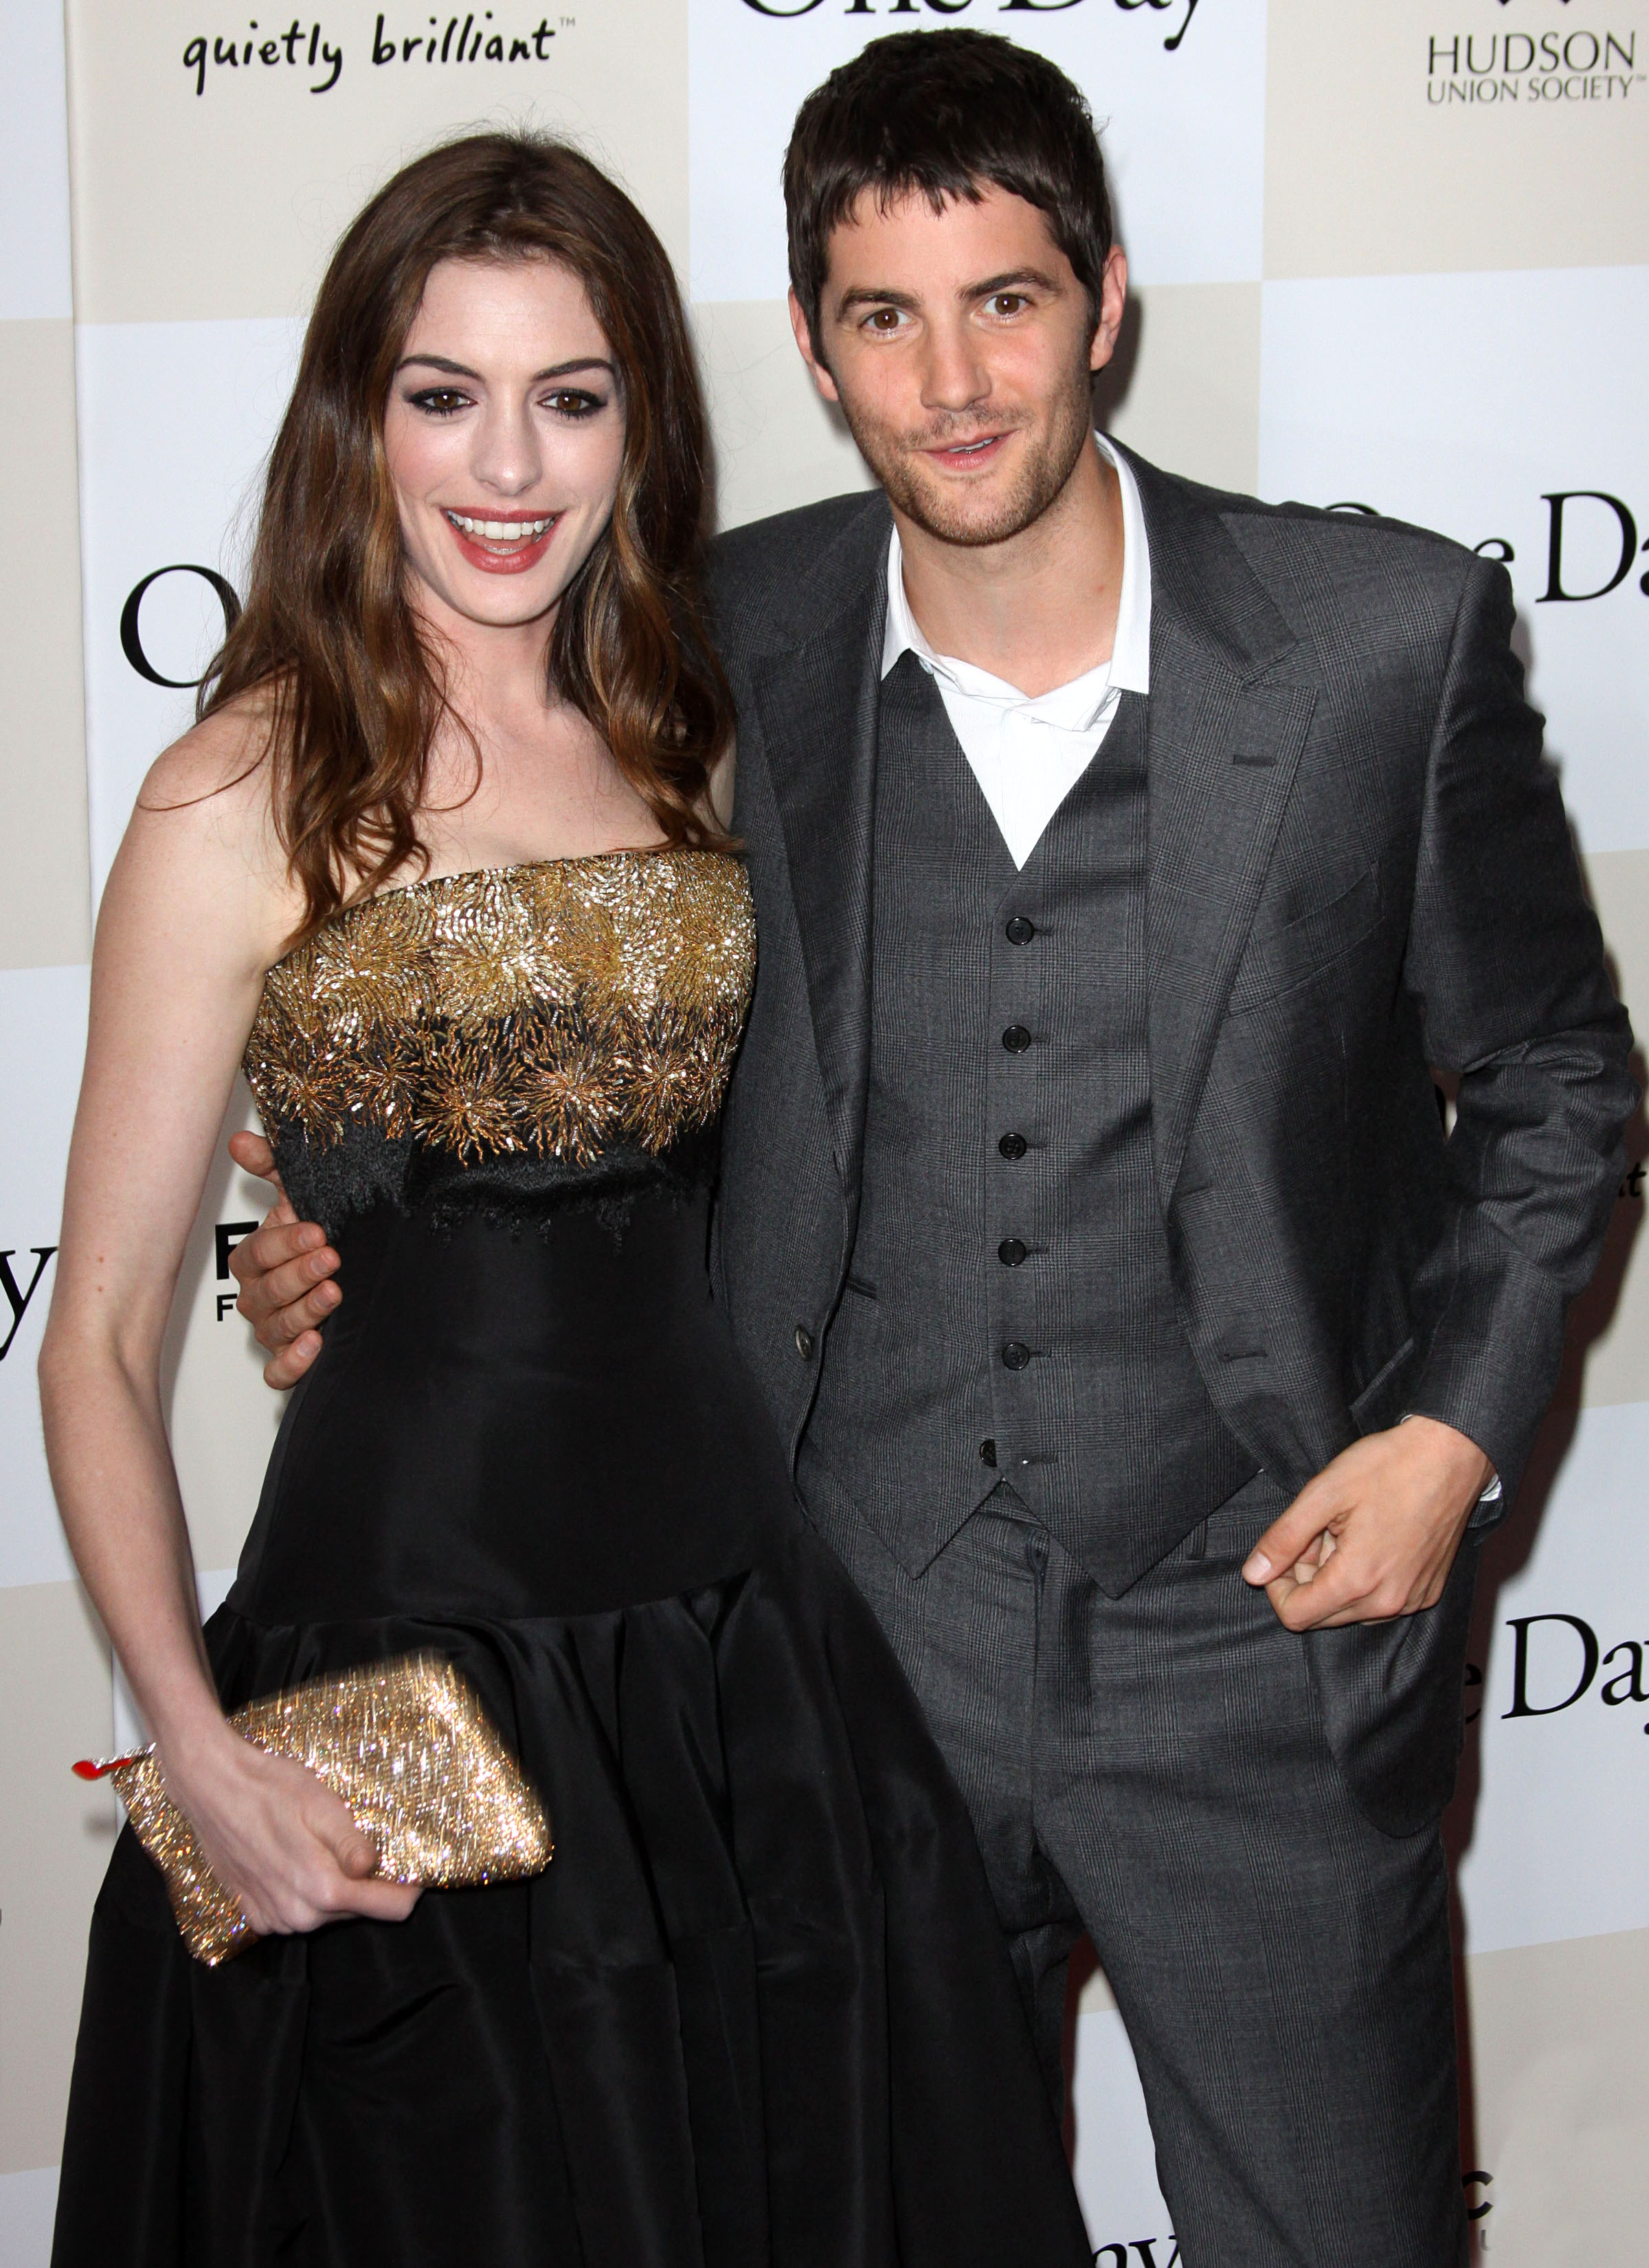 884791433_Anne_Hathaway_One_Day_Premiere_in_NYC8_122_588lo.jpg